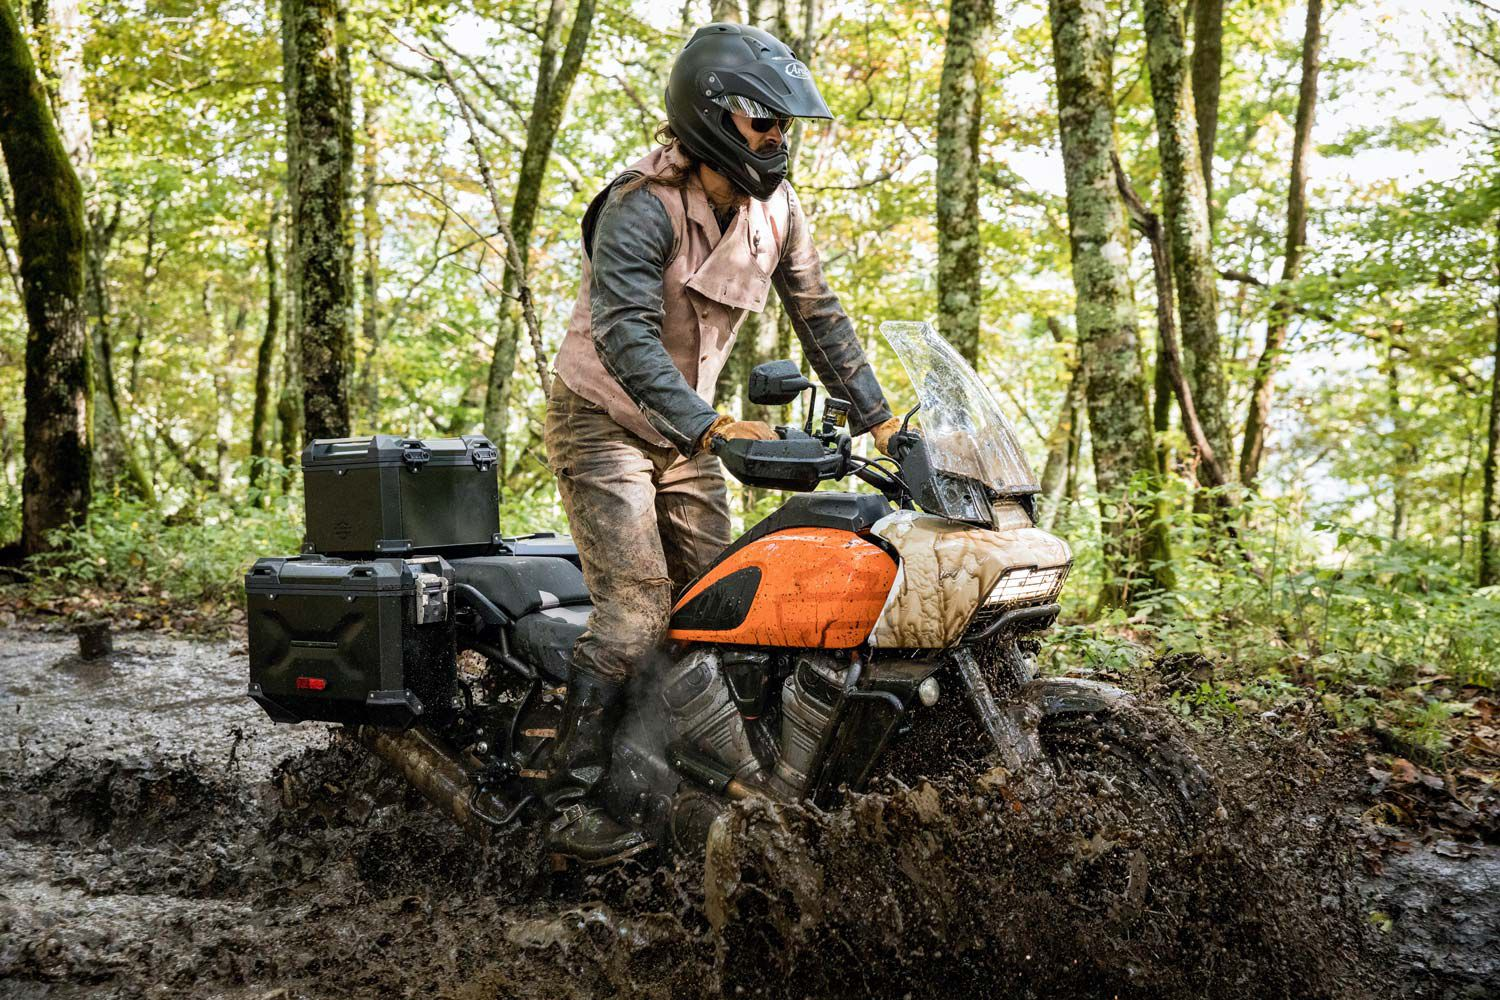 Jason Momoa, a Pan America 1250 brand ambassador, putting the Special through its paces.